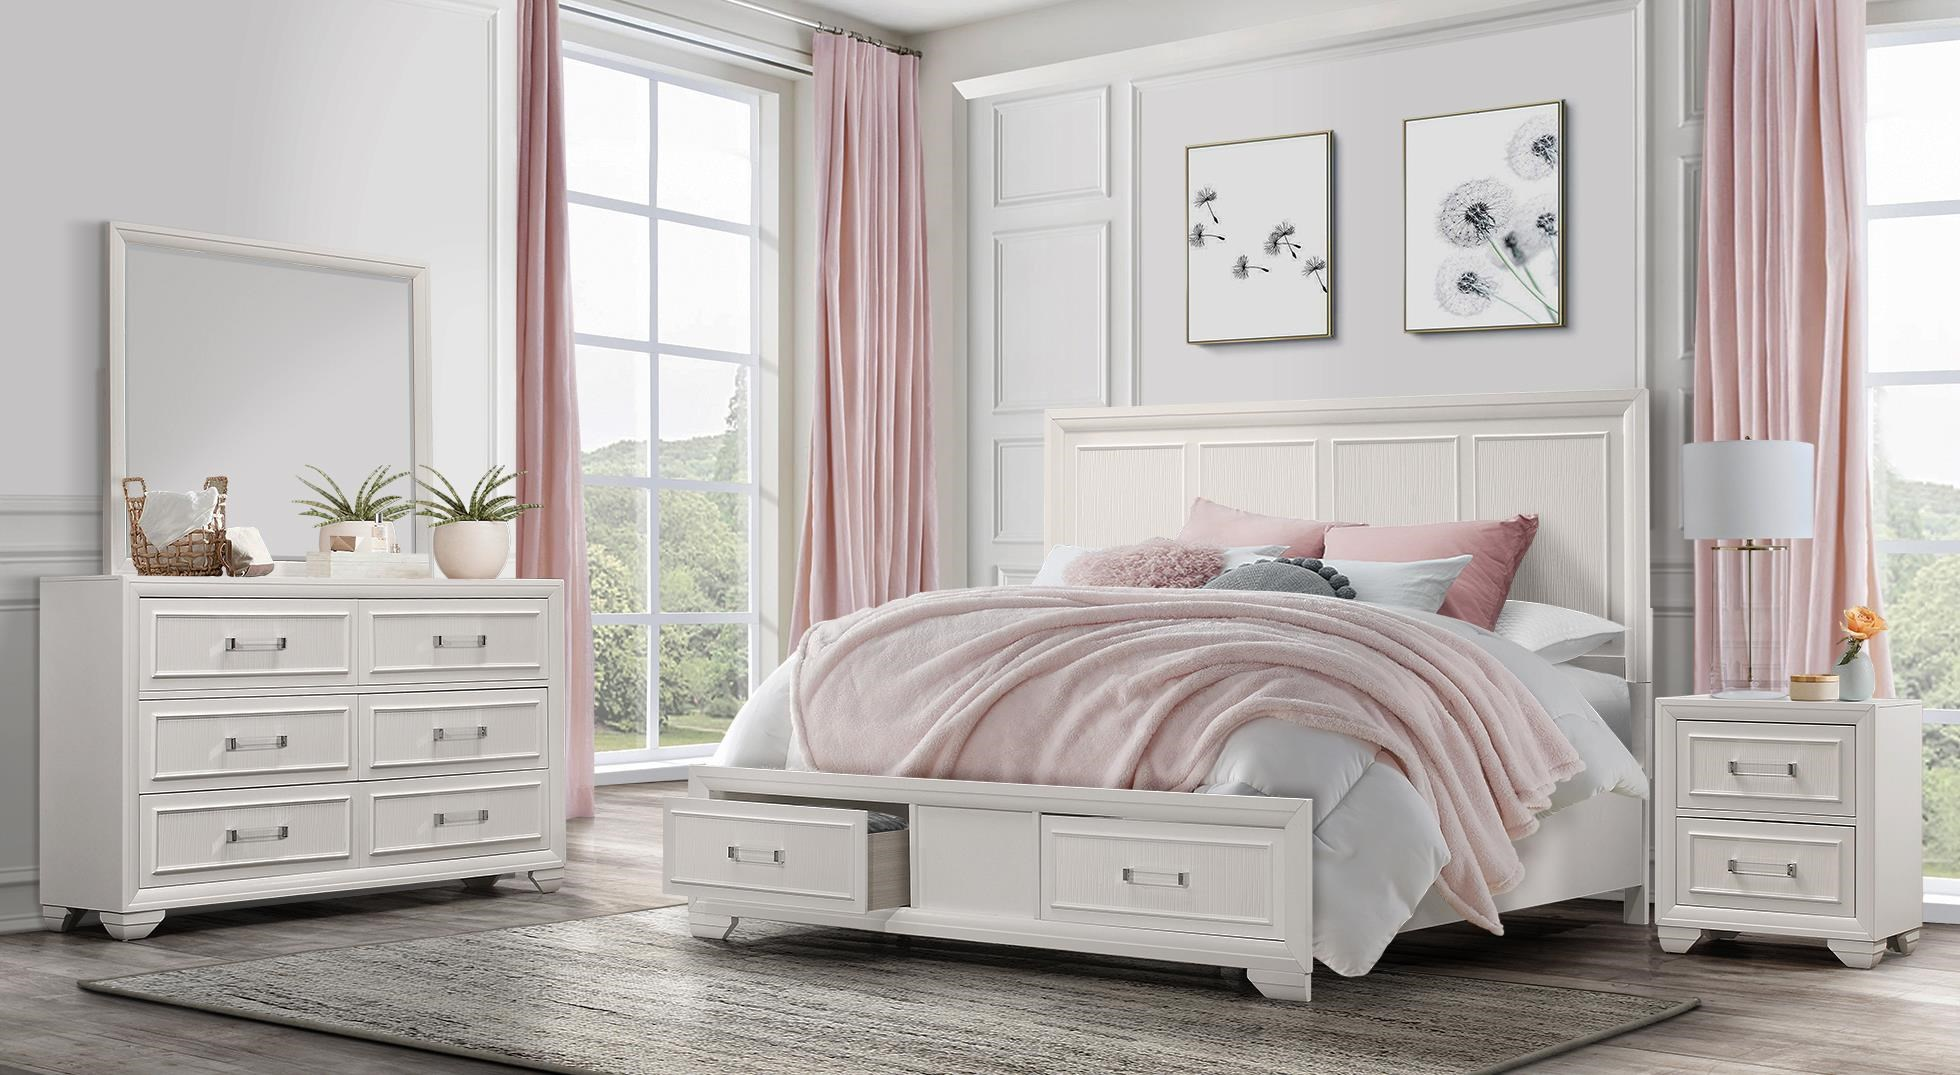 Pearl 4PC Full Bedroom Set at Rotmans